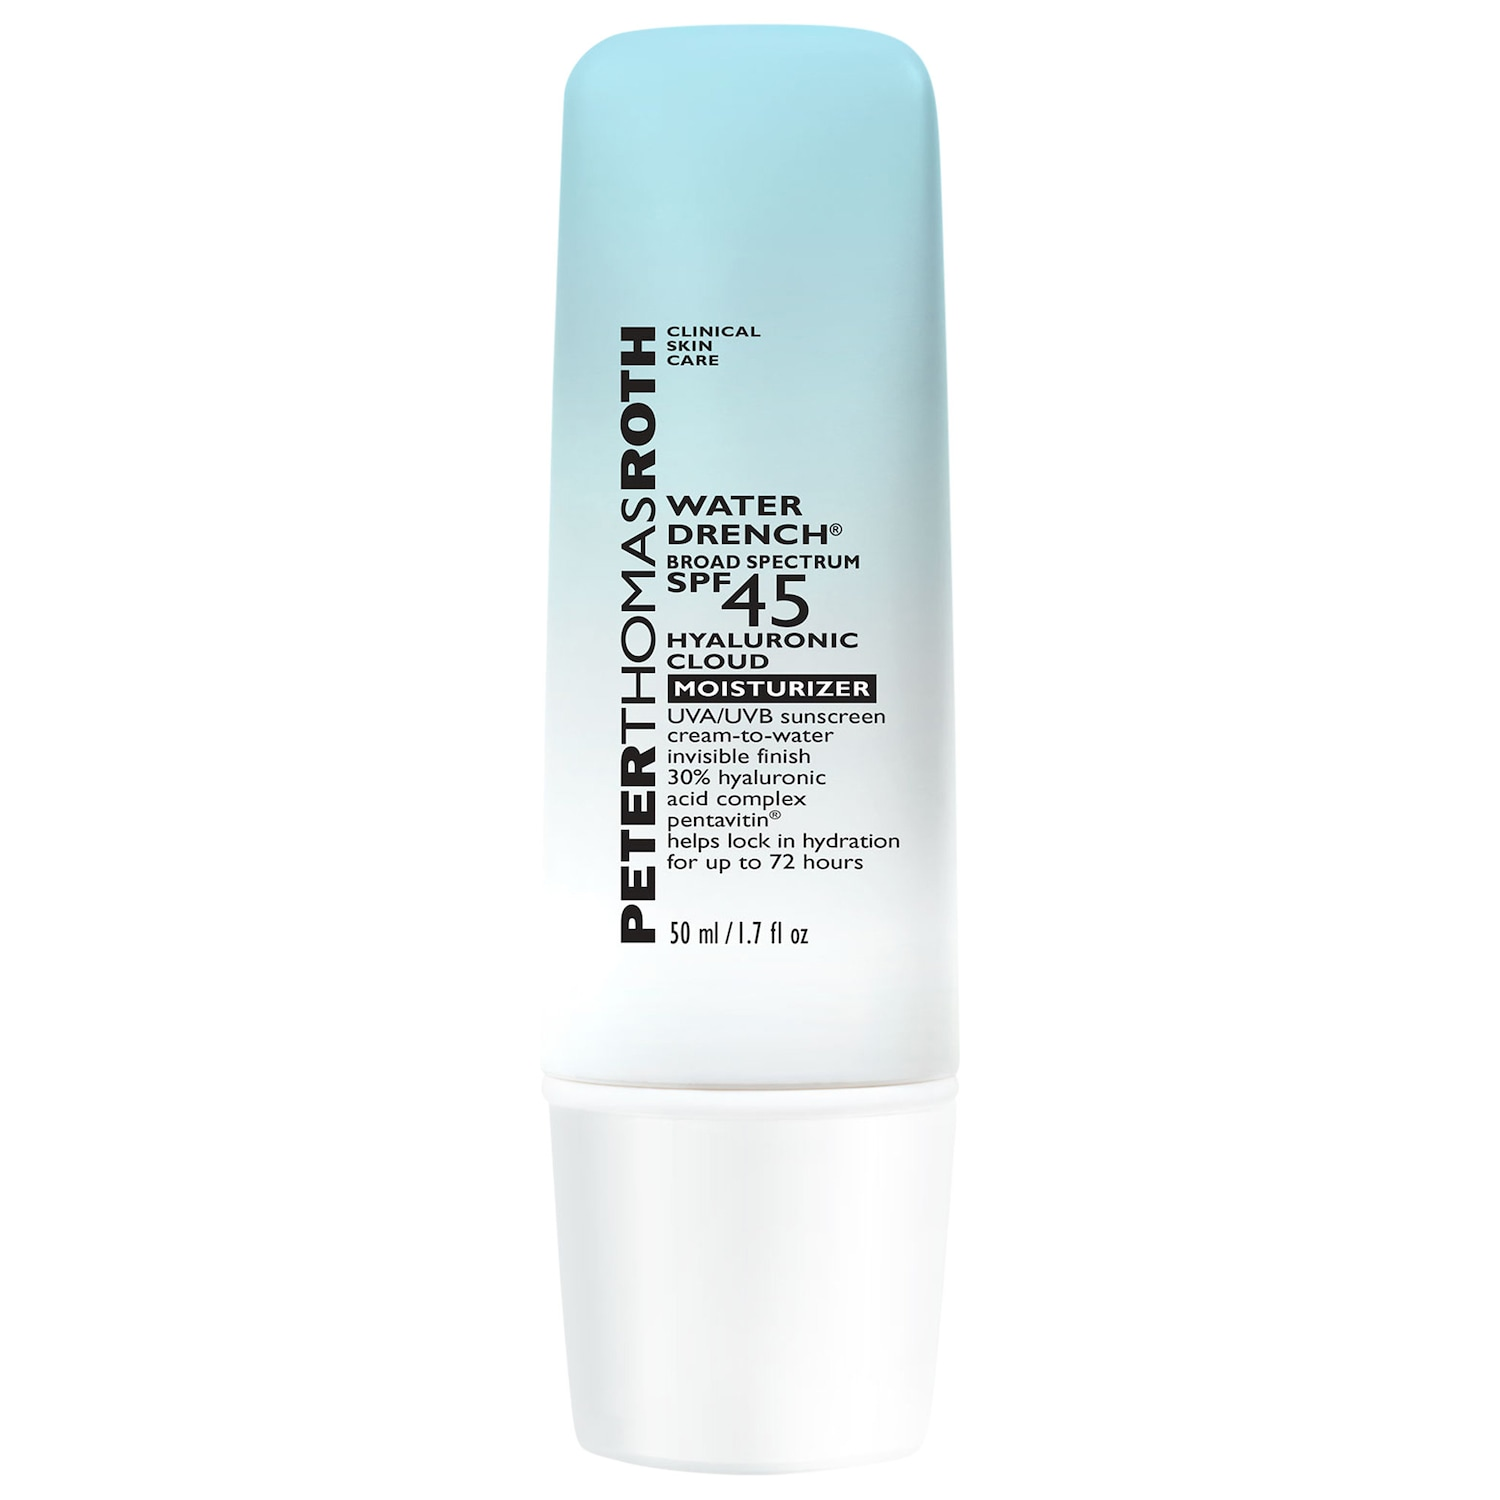 related product products/images/PeterThomasRoth-WaterDrenchHyaluronicHydratingMoisturizerSPF45.jpg